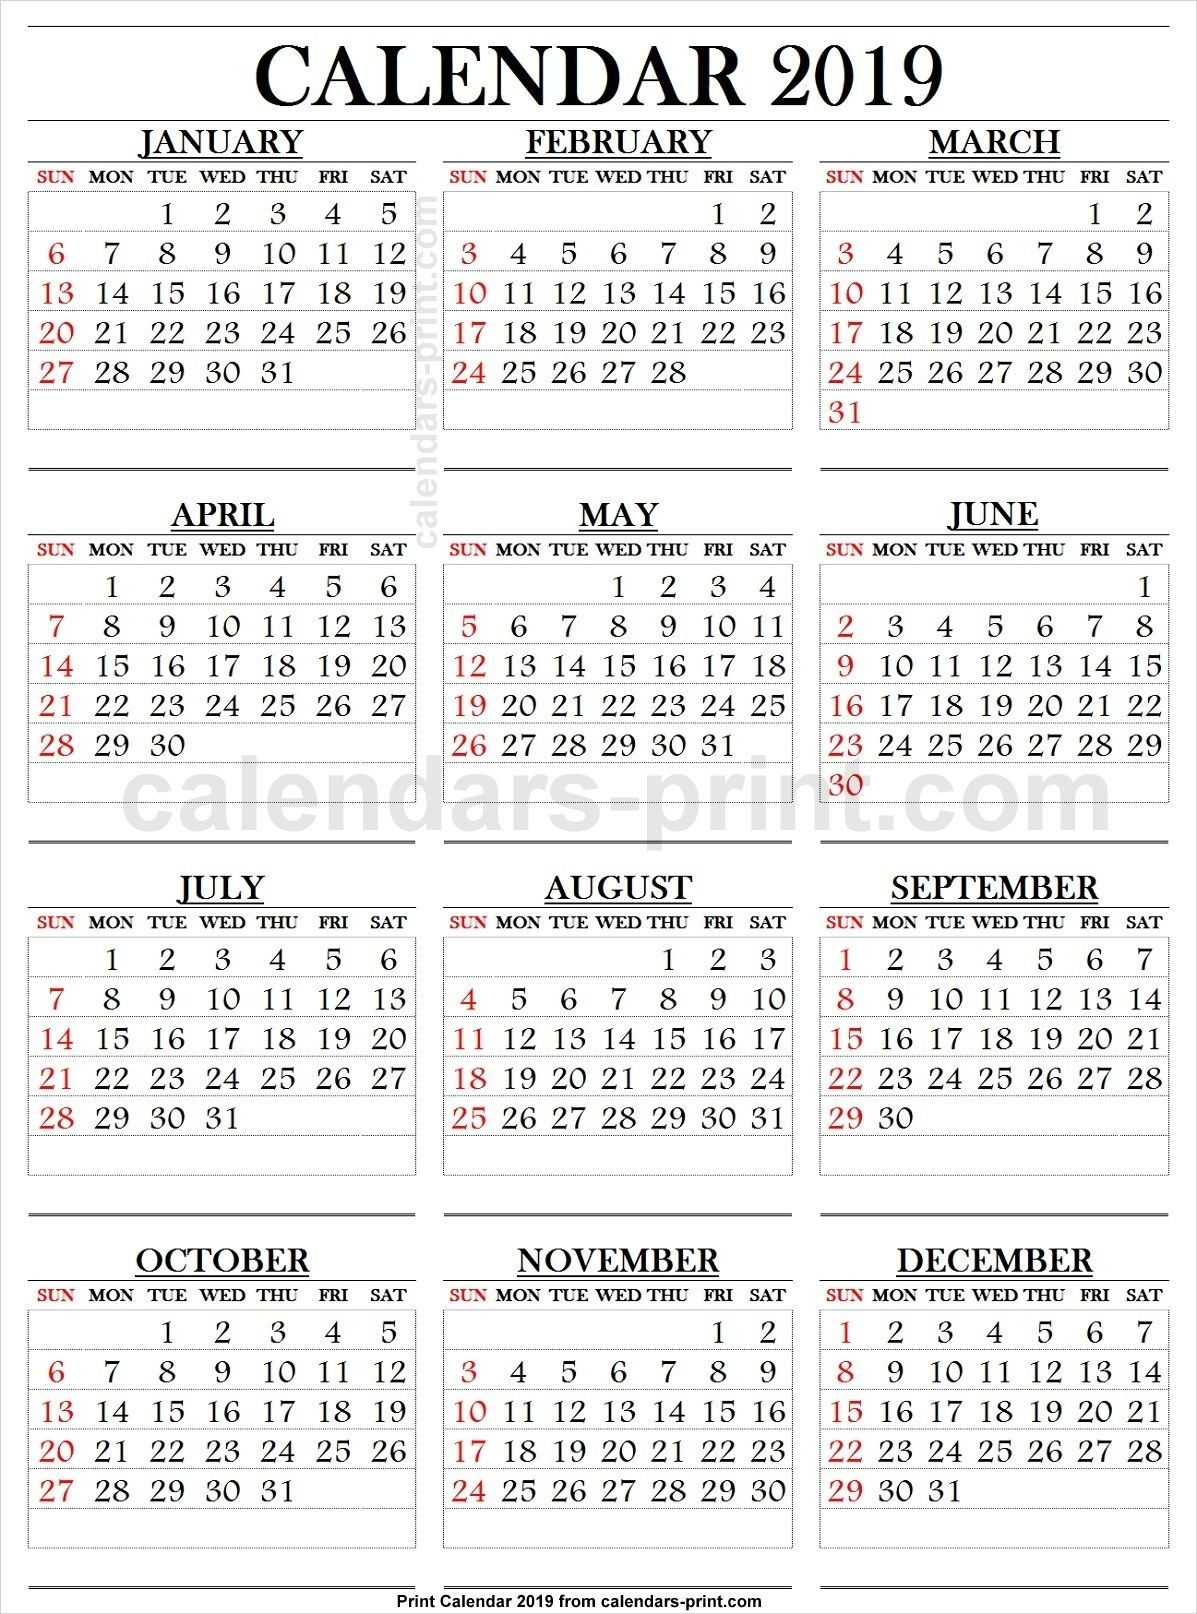 2019 Calendar Large Numbers | 2019 Yearly Calendar | 2019 Calendar  Free Template Printable Calendar Numbers